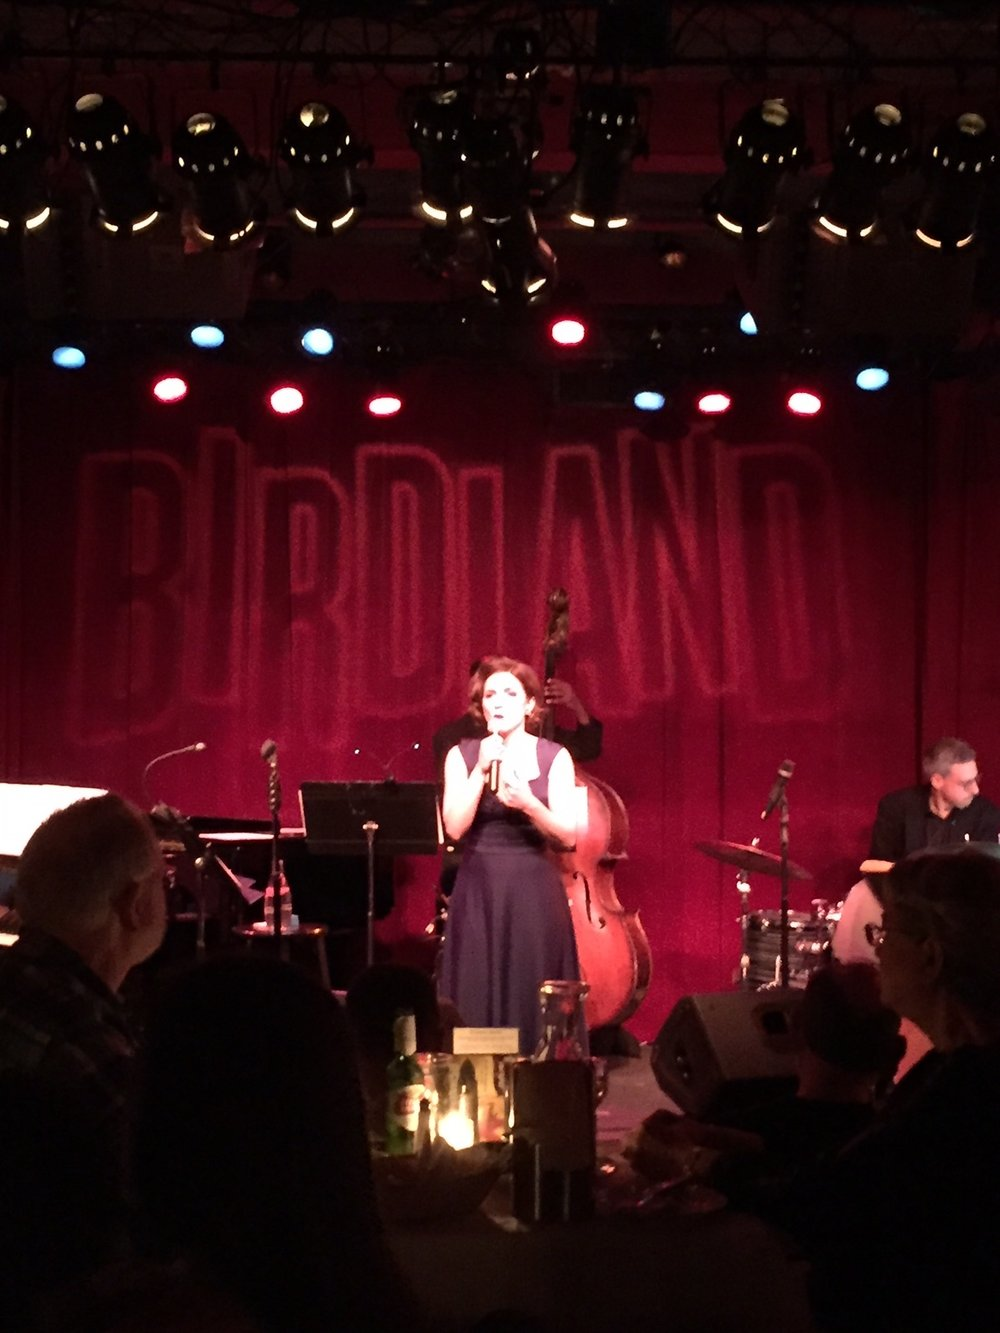 Birdland Jazz Club performance